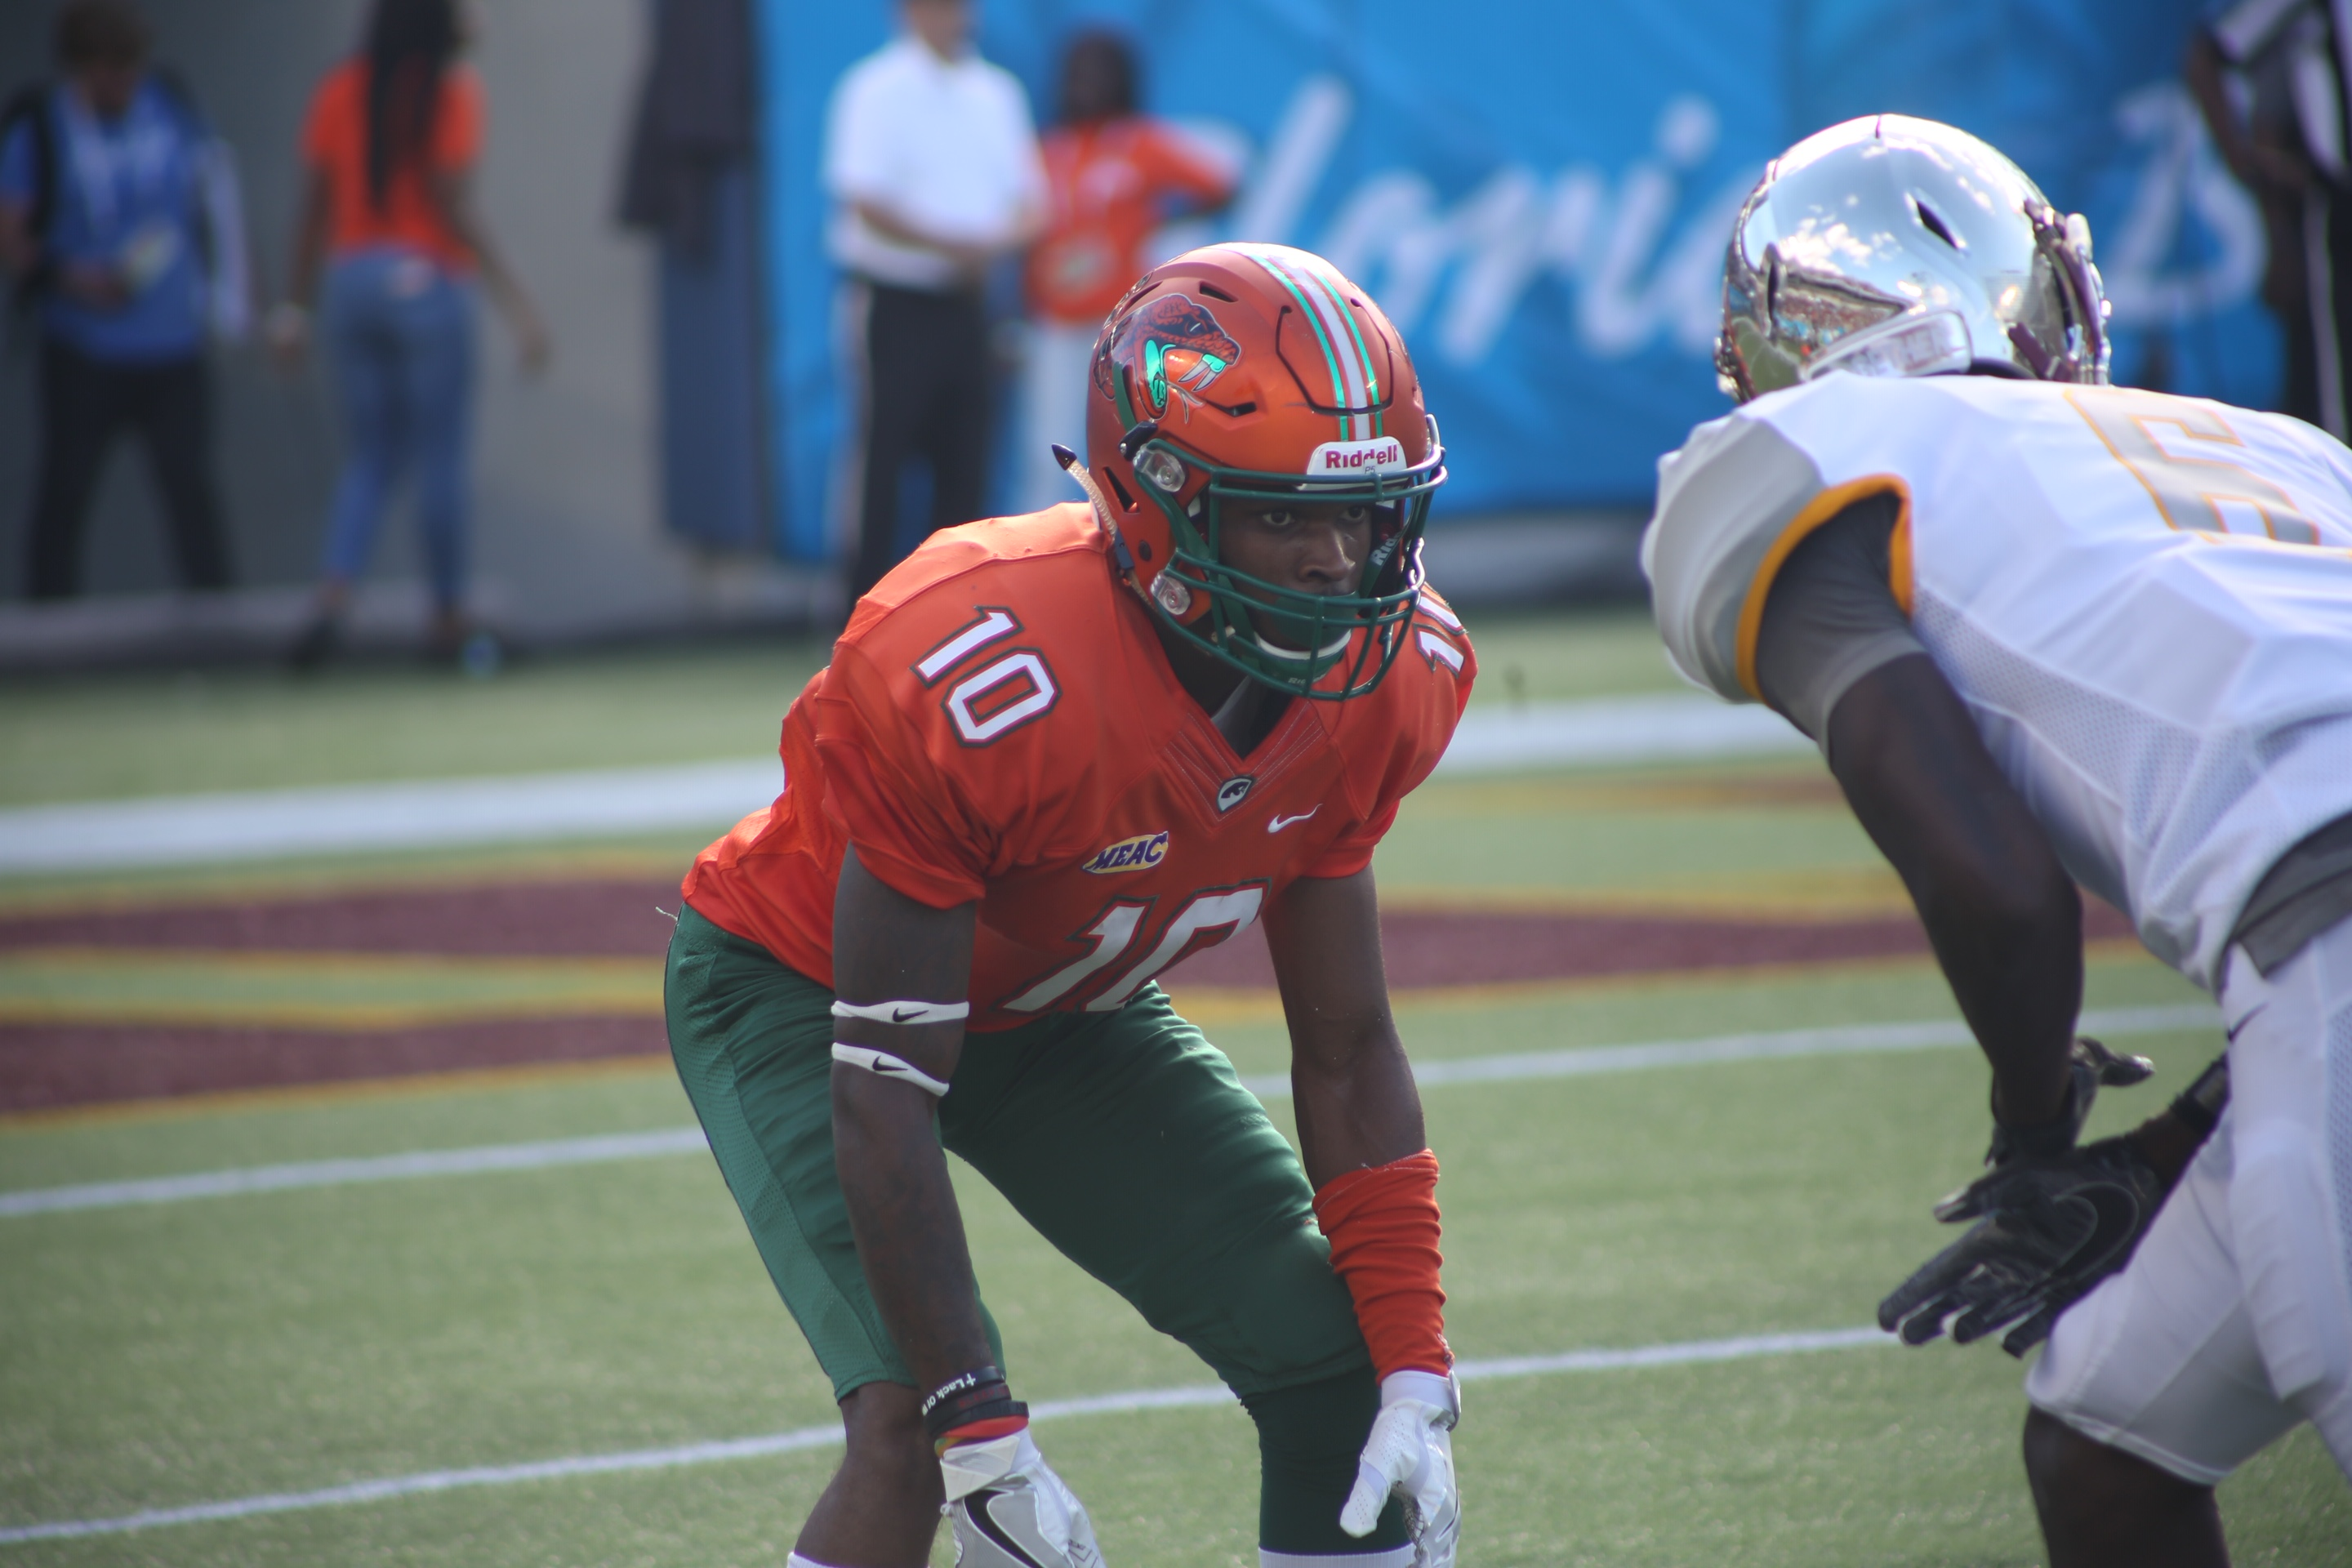 Famu Folds In Florida Classic Celebration Bowl Hopes Dashed Hbcu Gameday